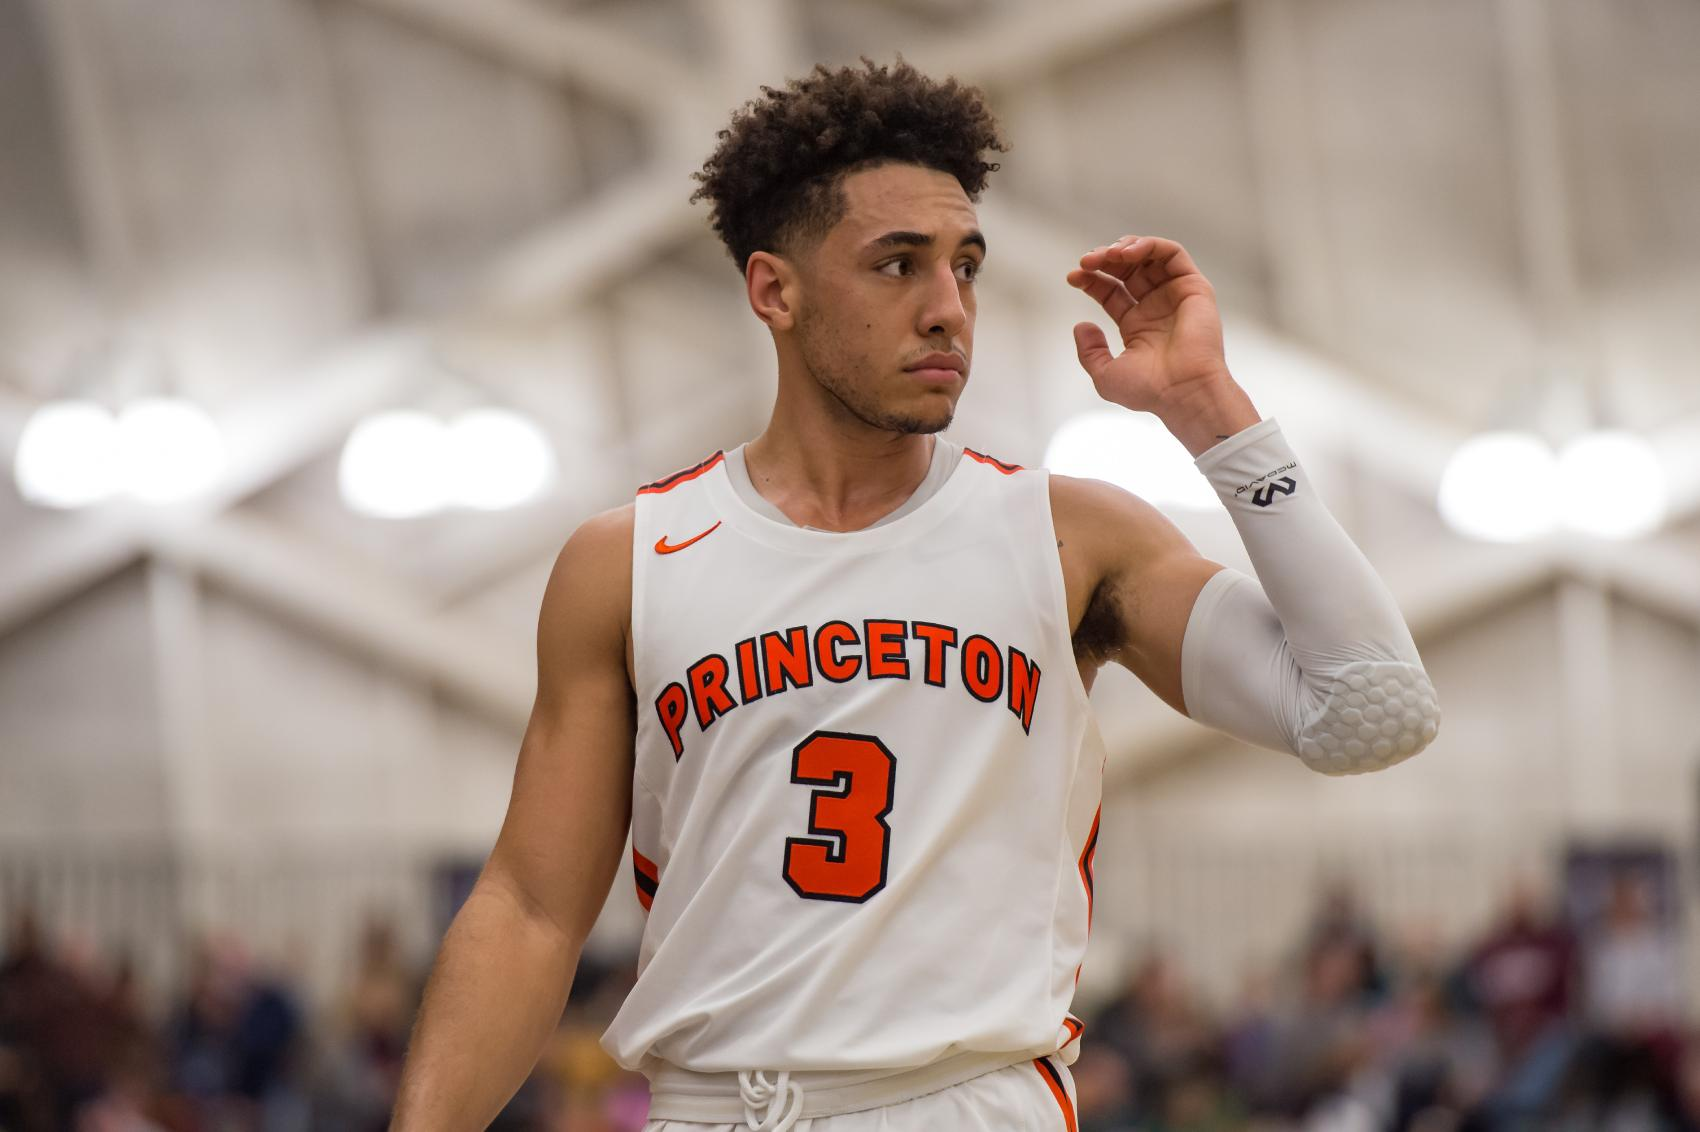 Devin Cannady had a standout basketball career at Princeton.